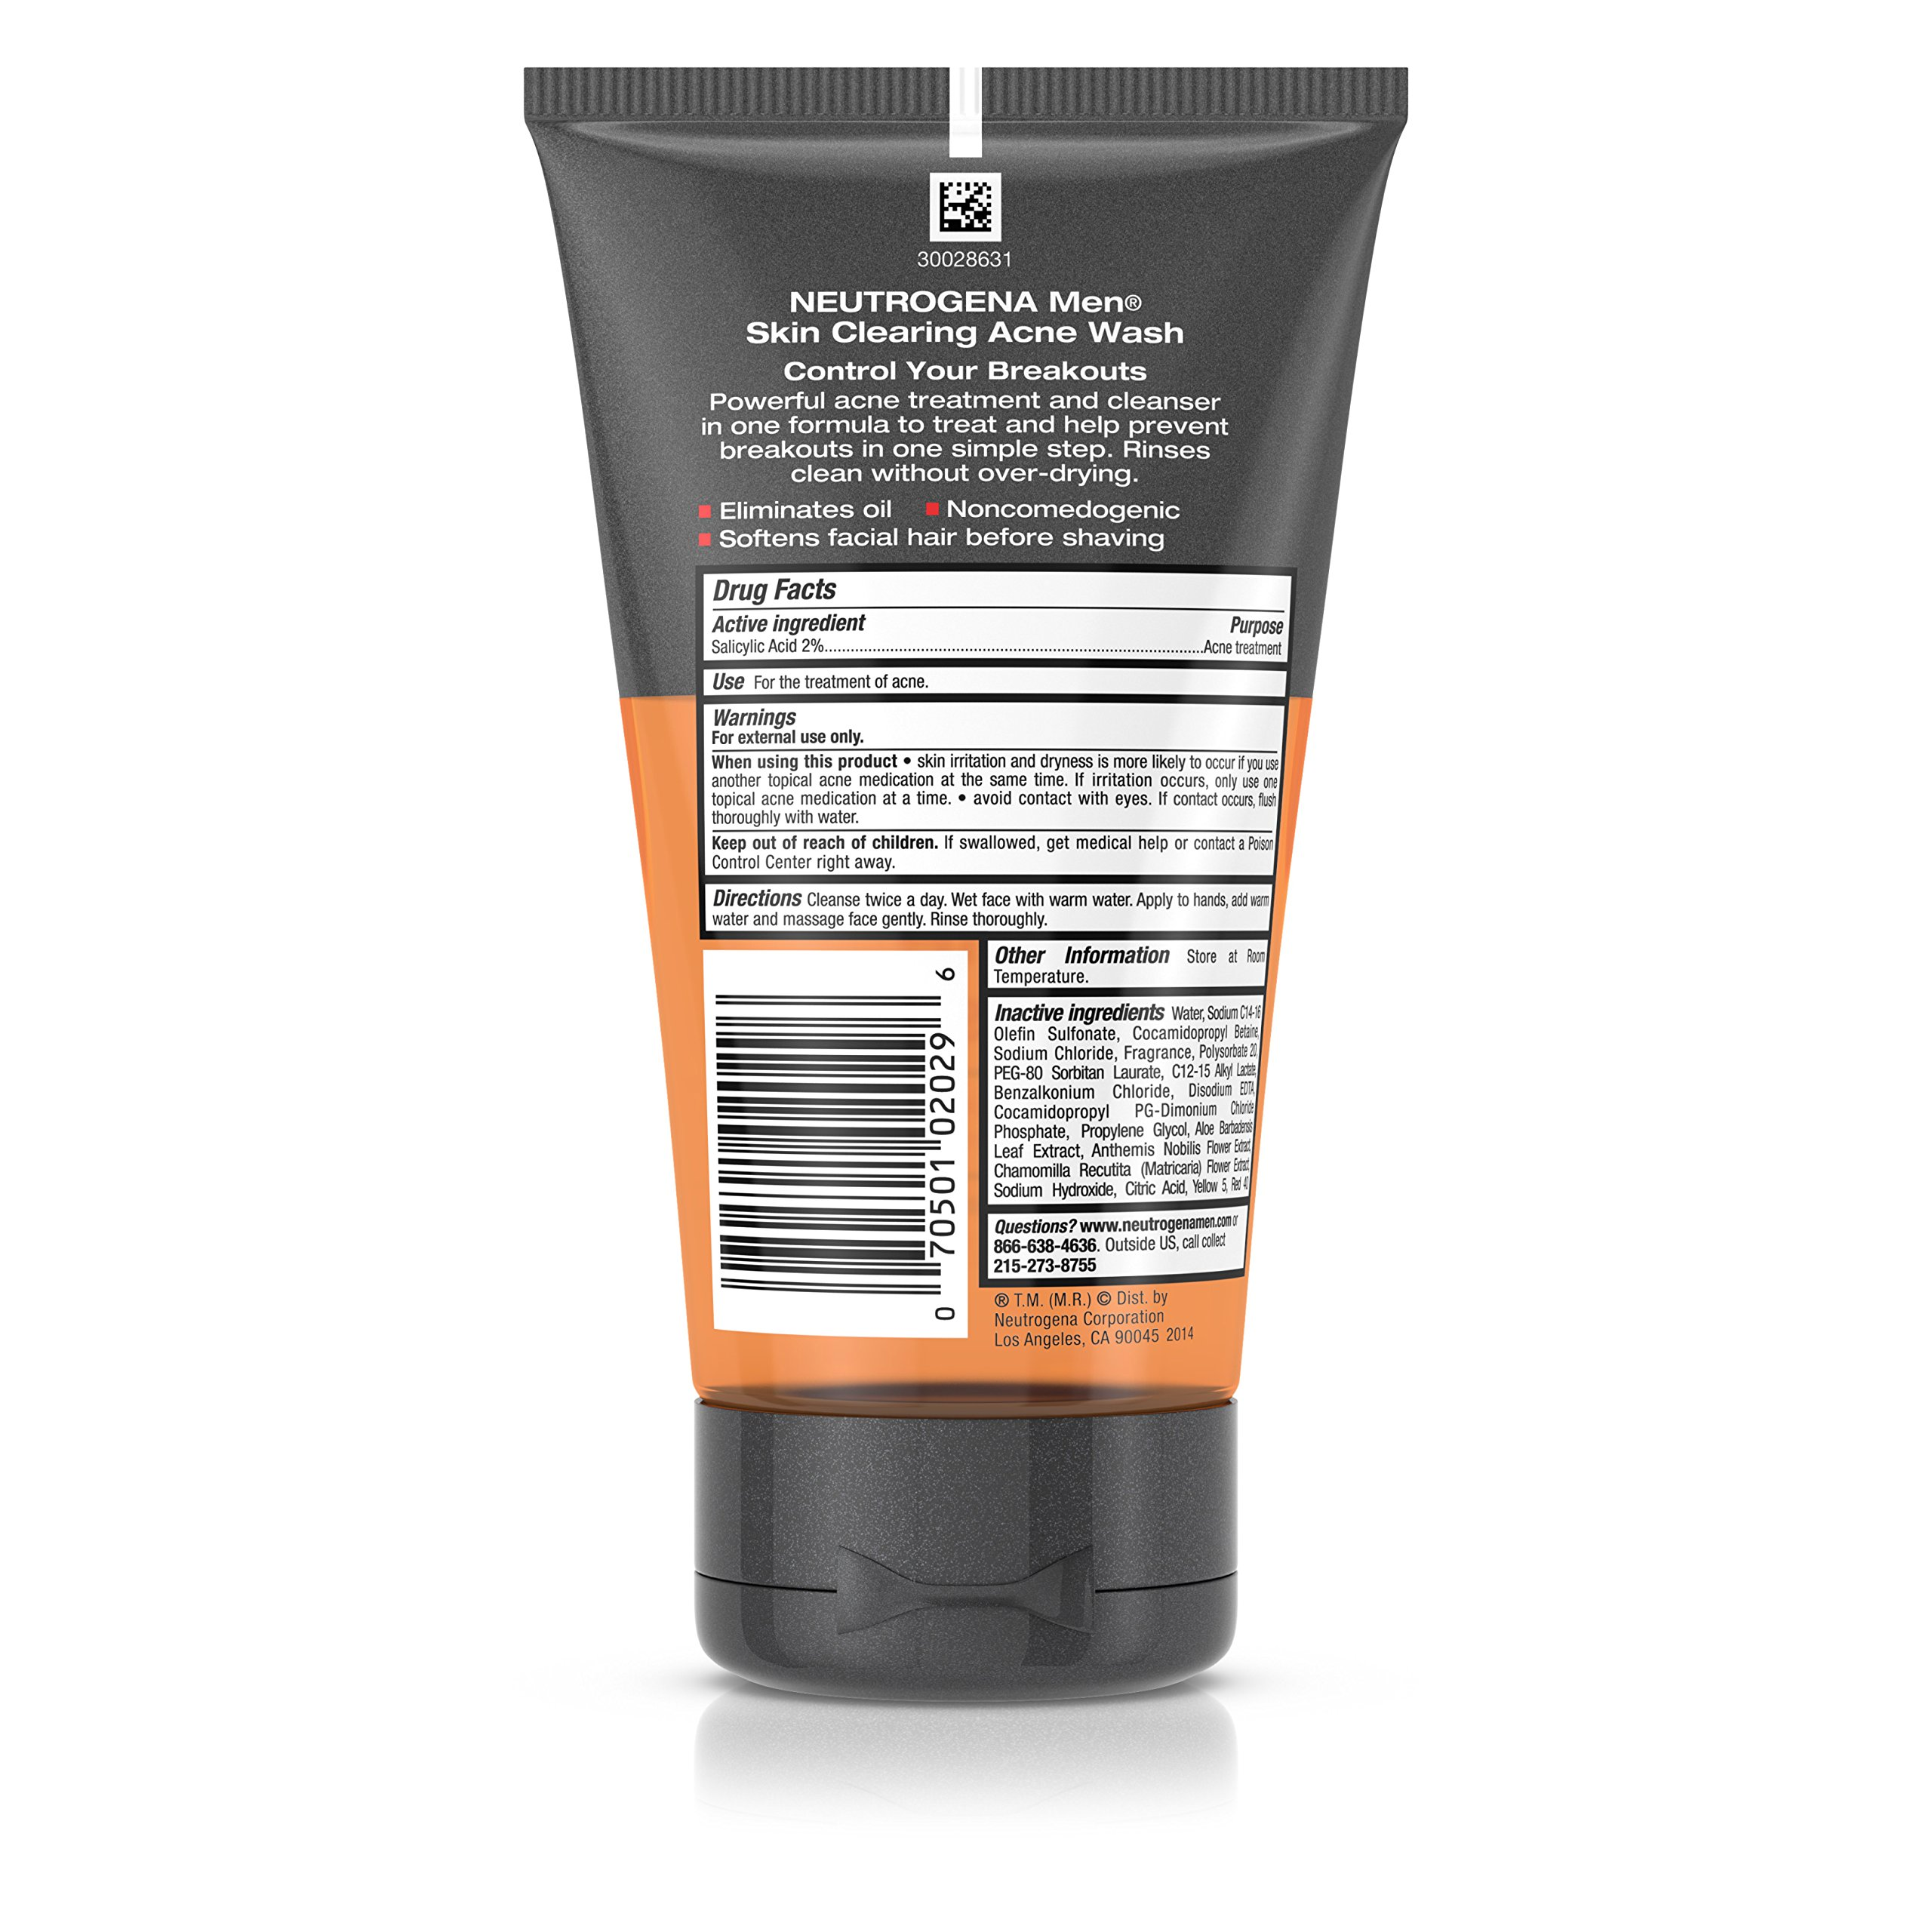 Neutrogena Men Skin Clearing Daily Acne Face Wash with Salicylic Acid Acne  Treatment, Non-Comedogenic Facial Cleanser to Treat & Prevent Breakouts, ...